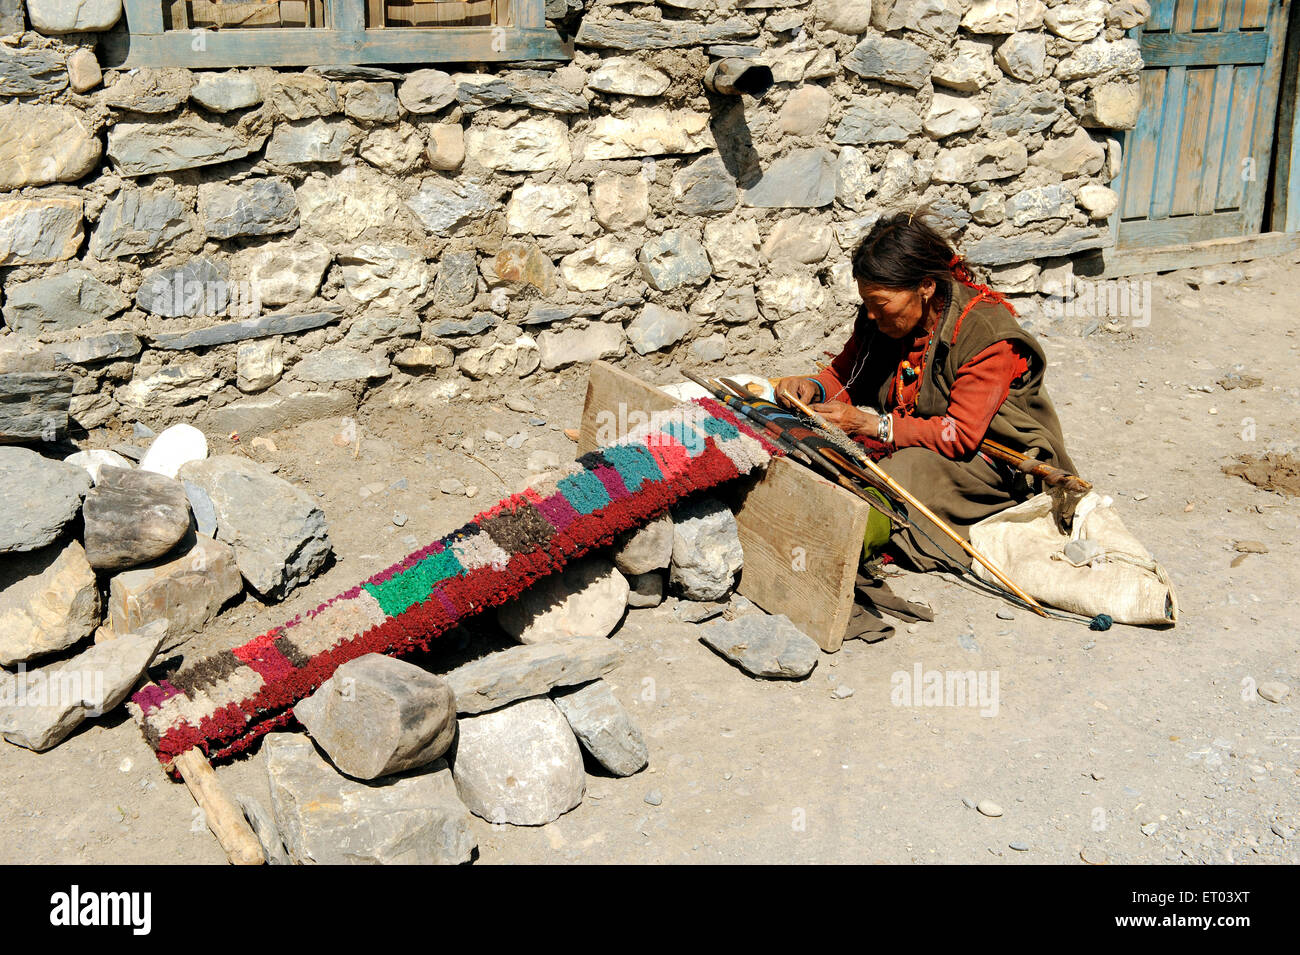 Woman weaving colourful woollen clothes ; Kagbeni ; Nepal NO MR - Stock Image